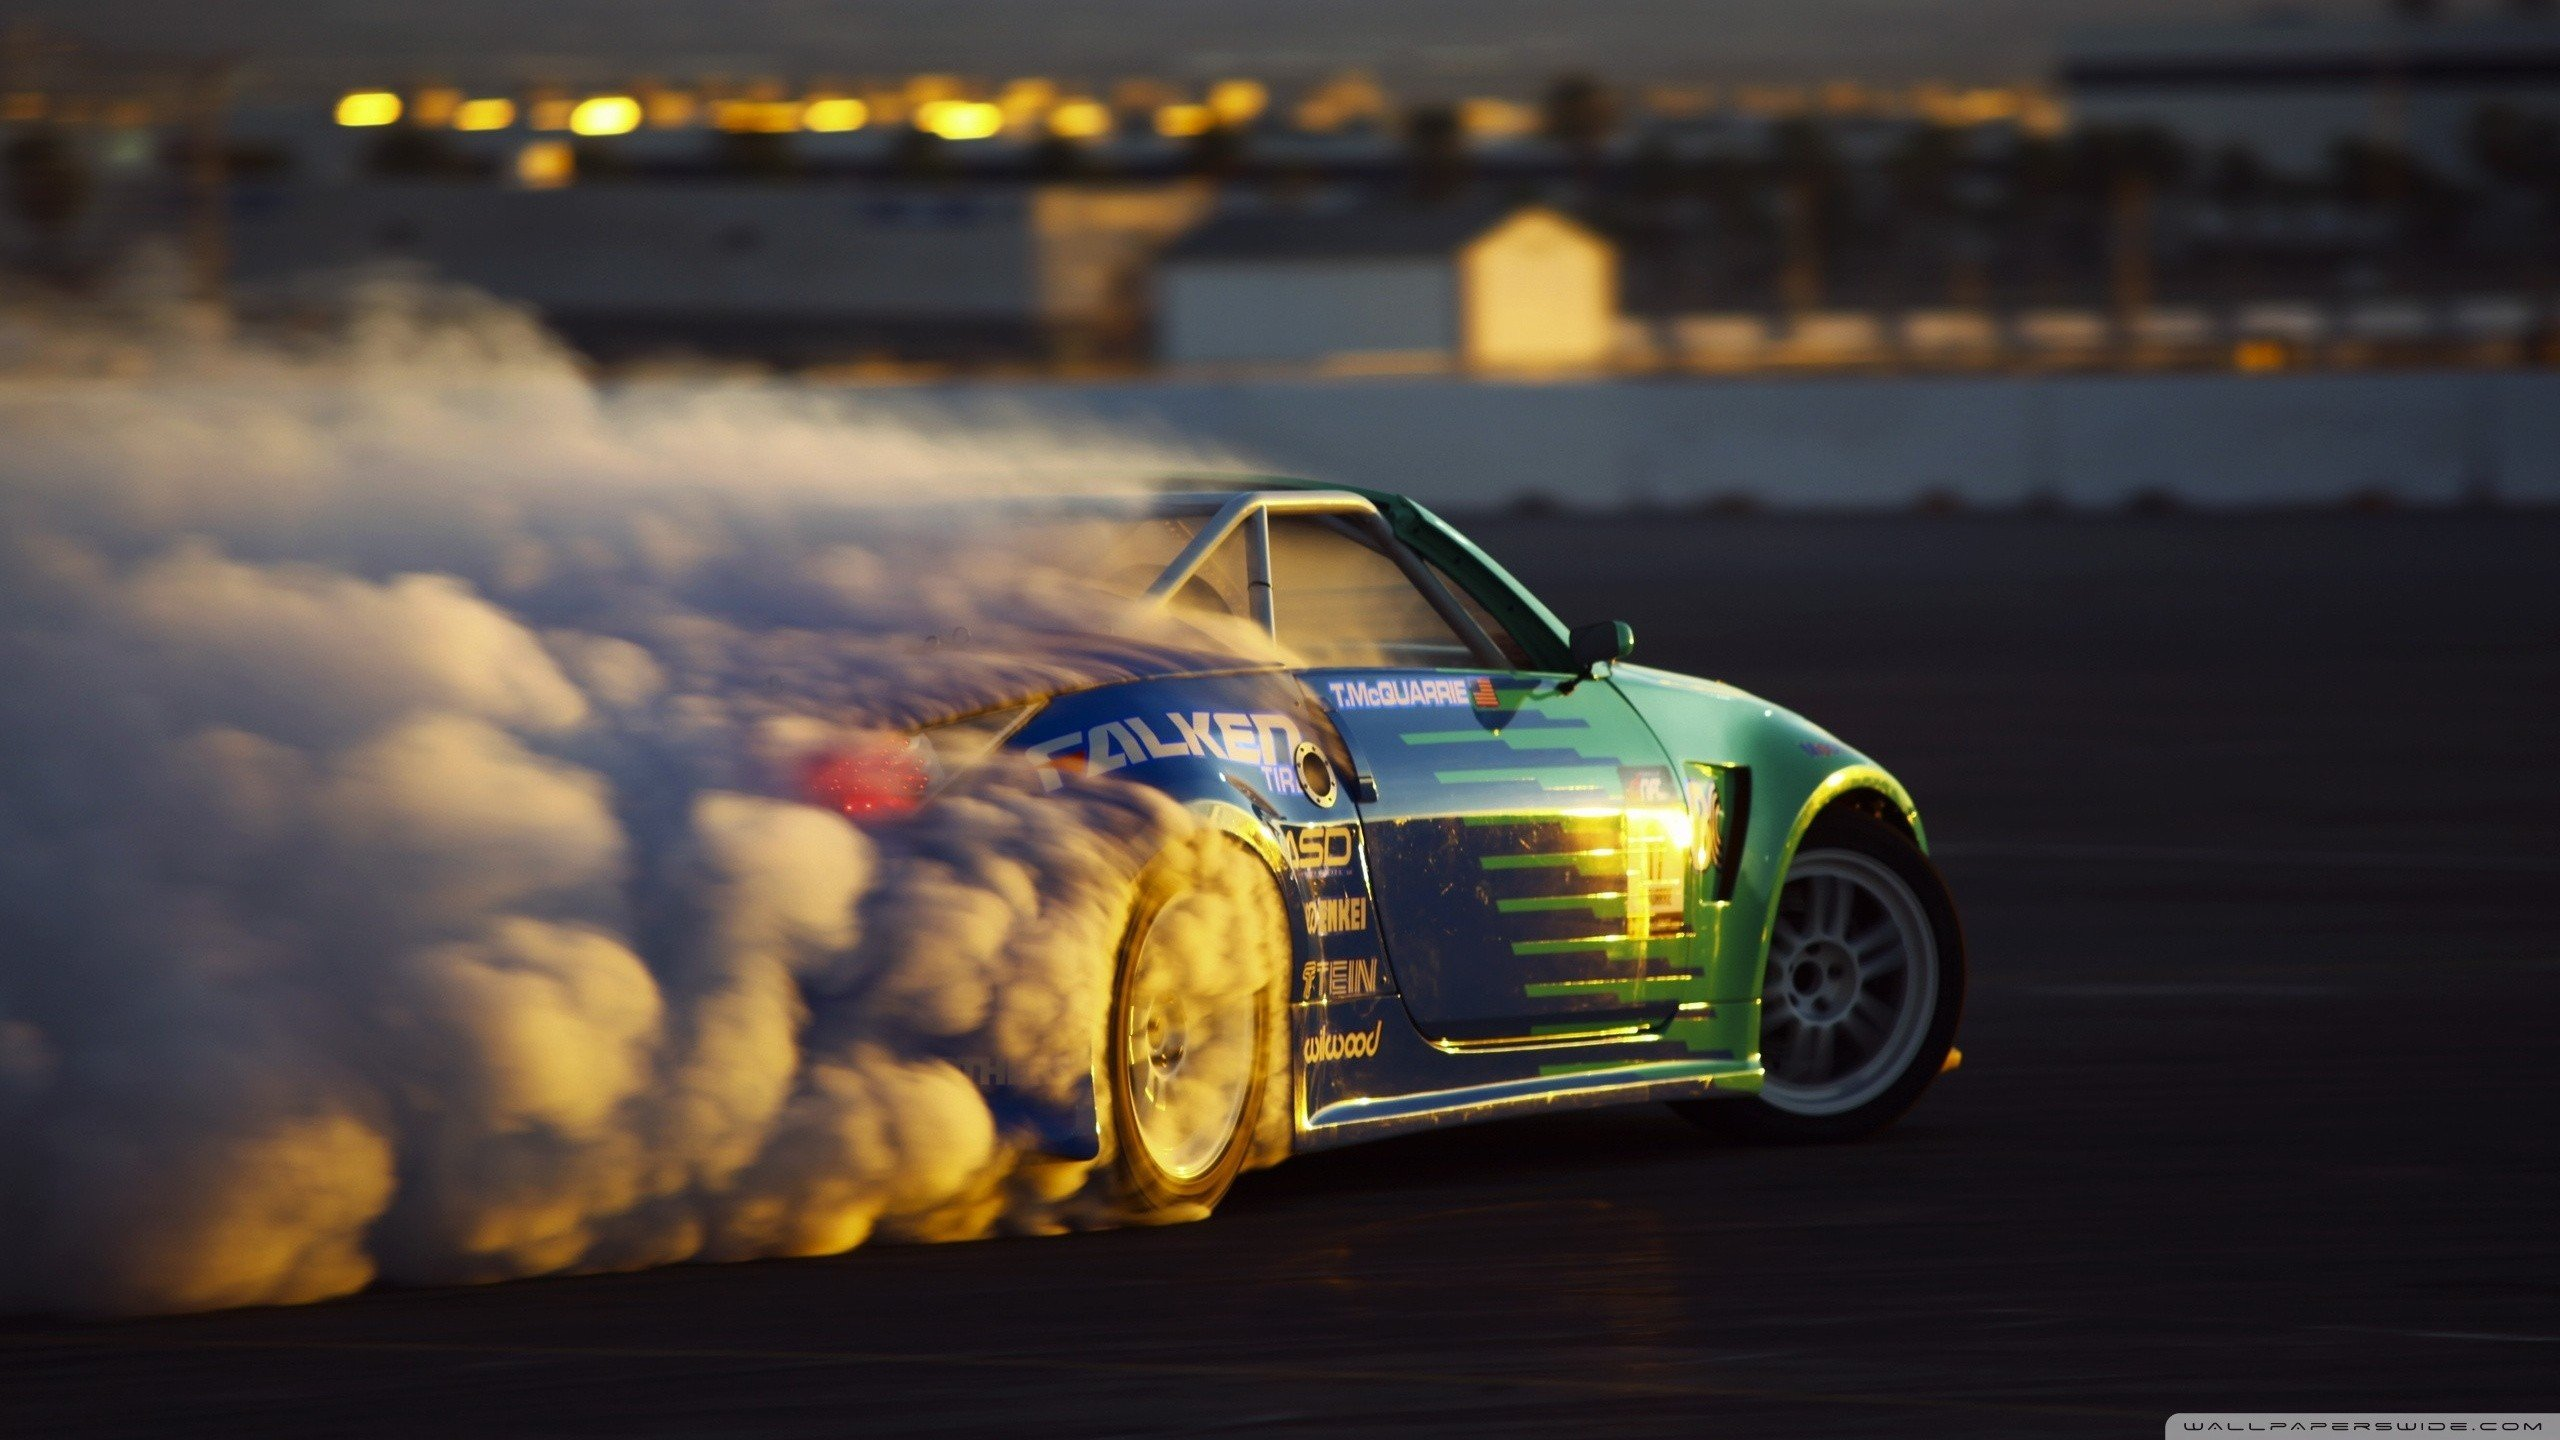 free download nissan 350z wallpaper id:456819 hd 2560x1440 for pc